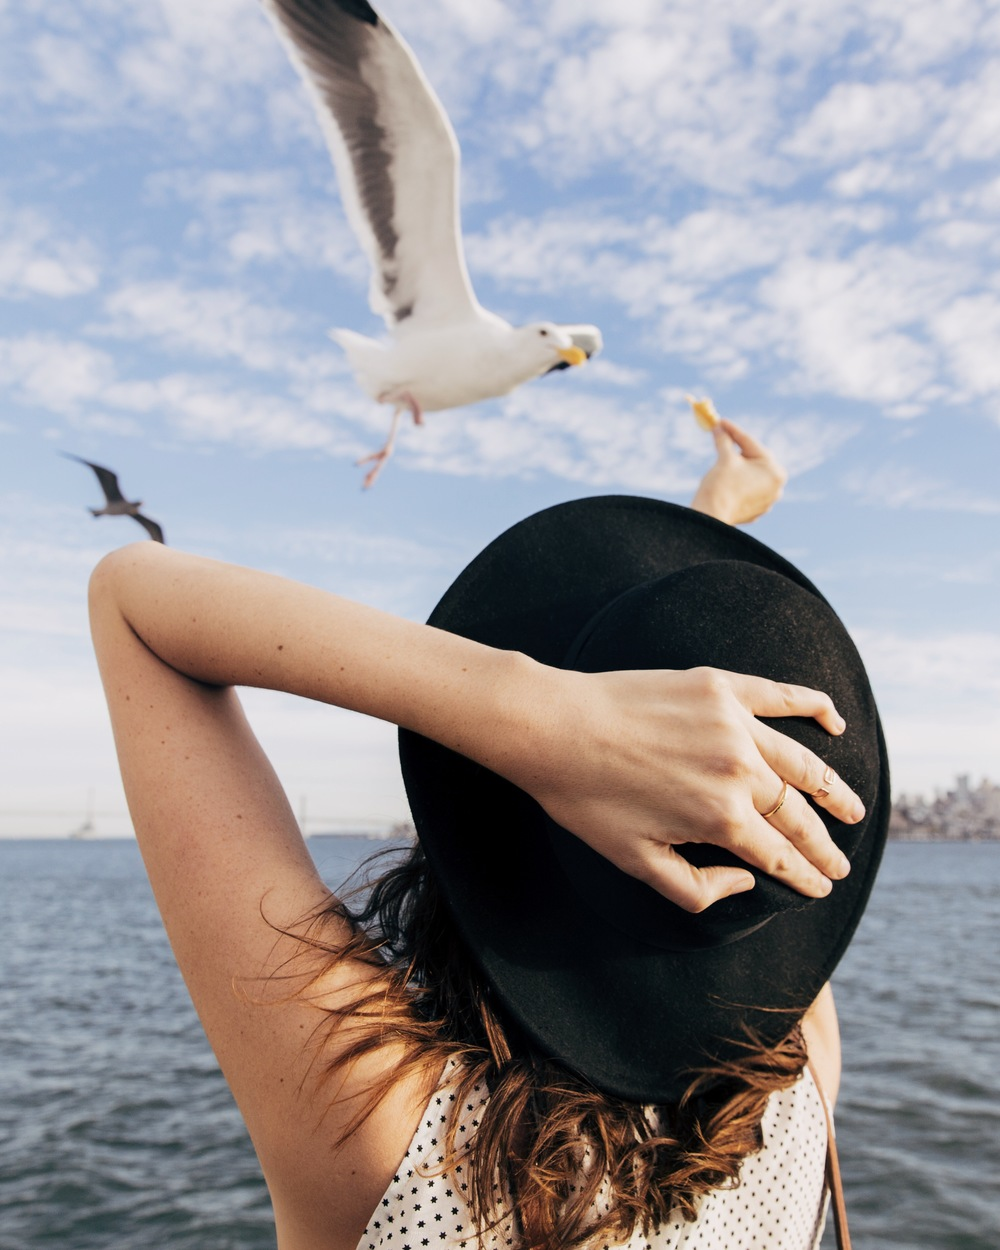 A bird eating out of the hand of the girl with the hat